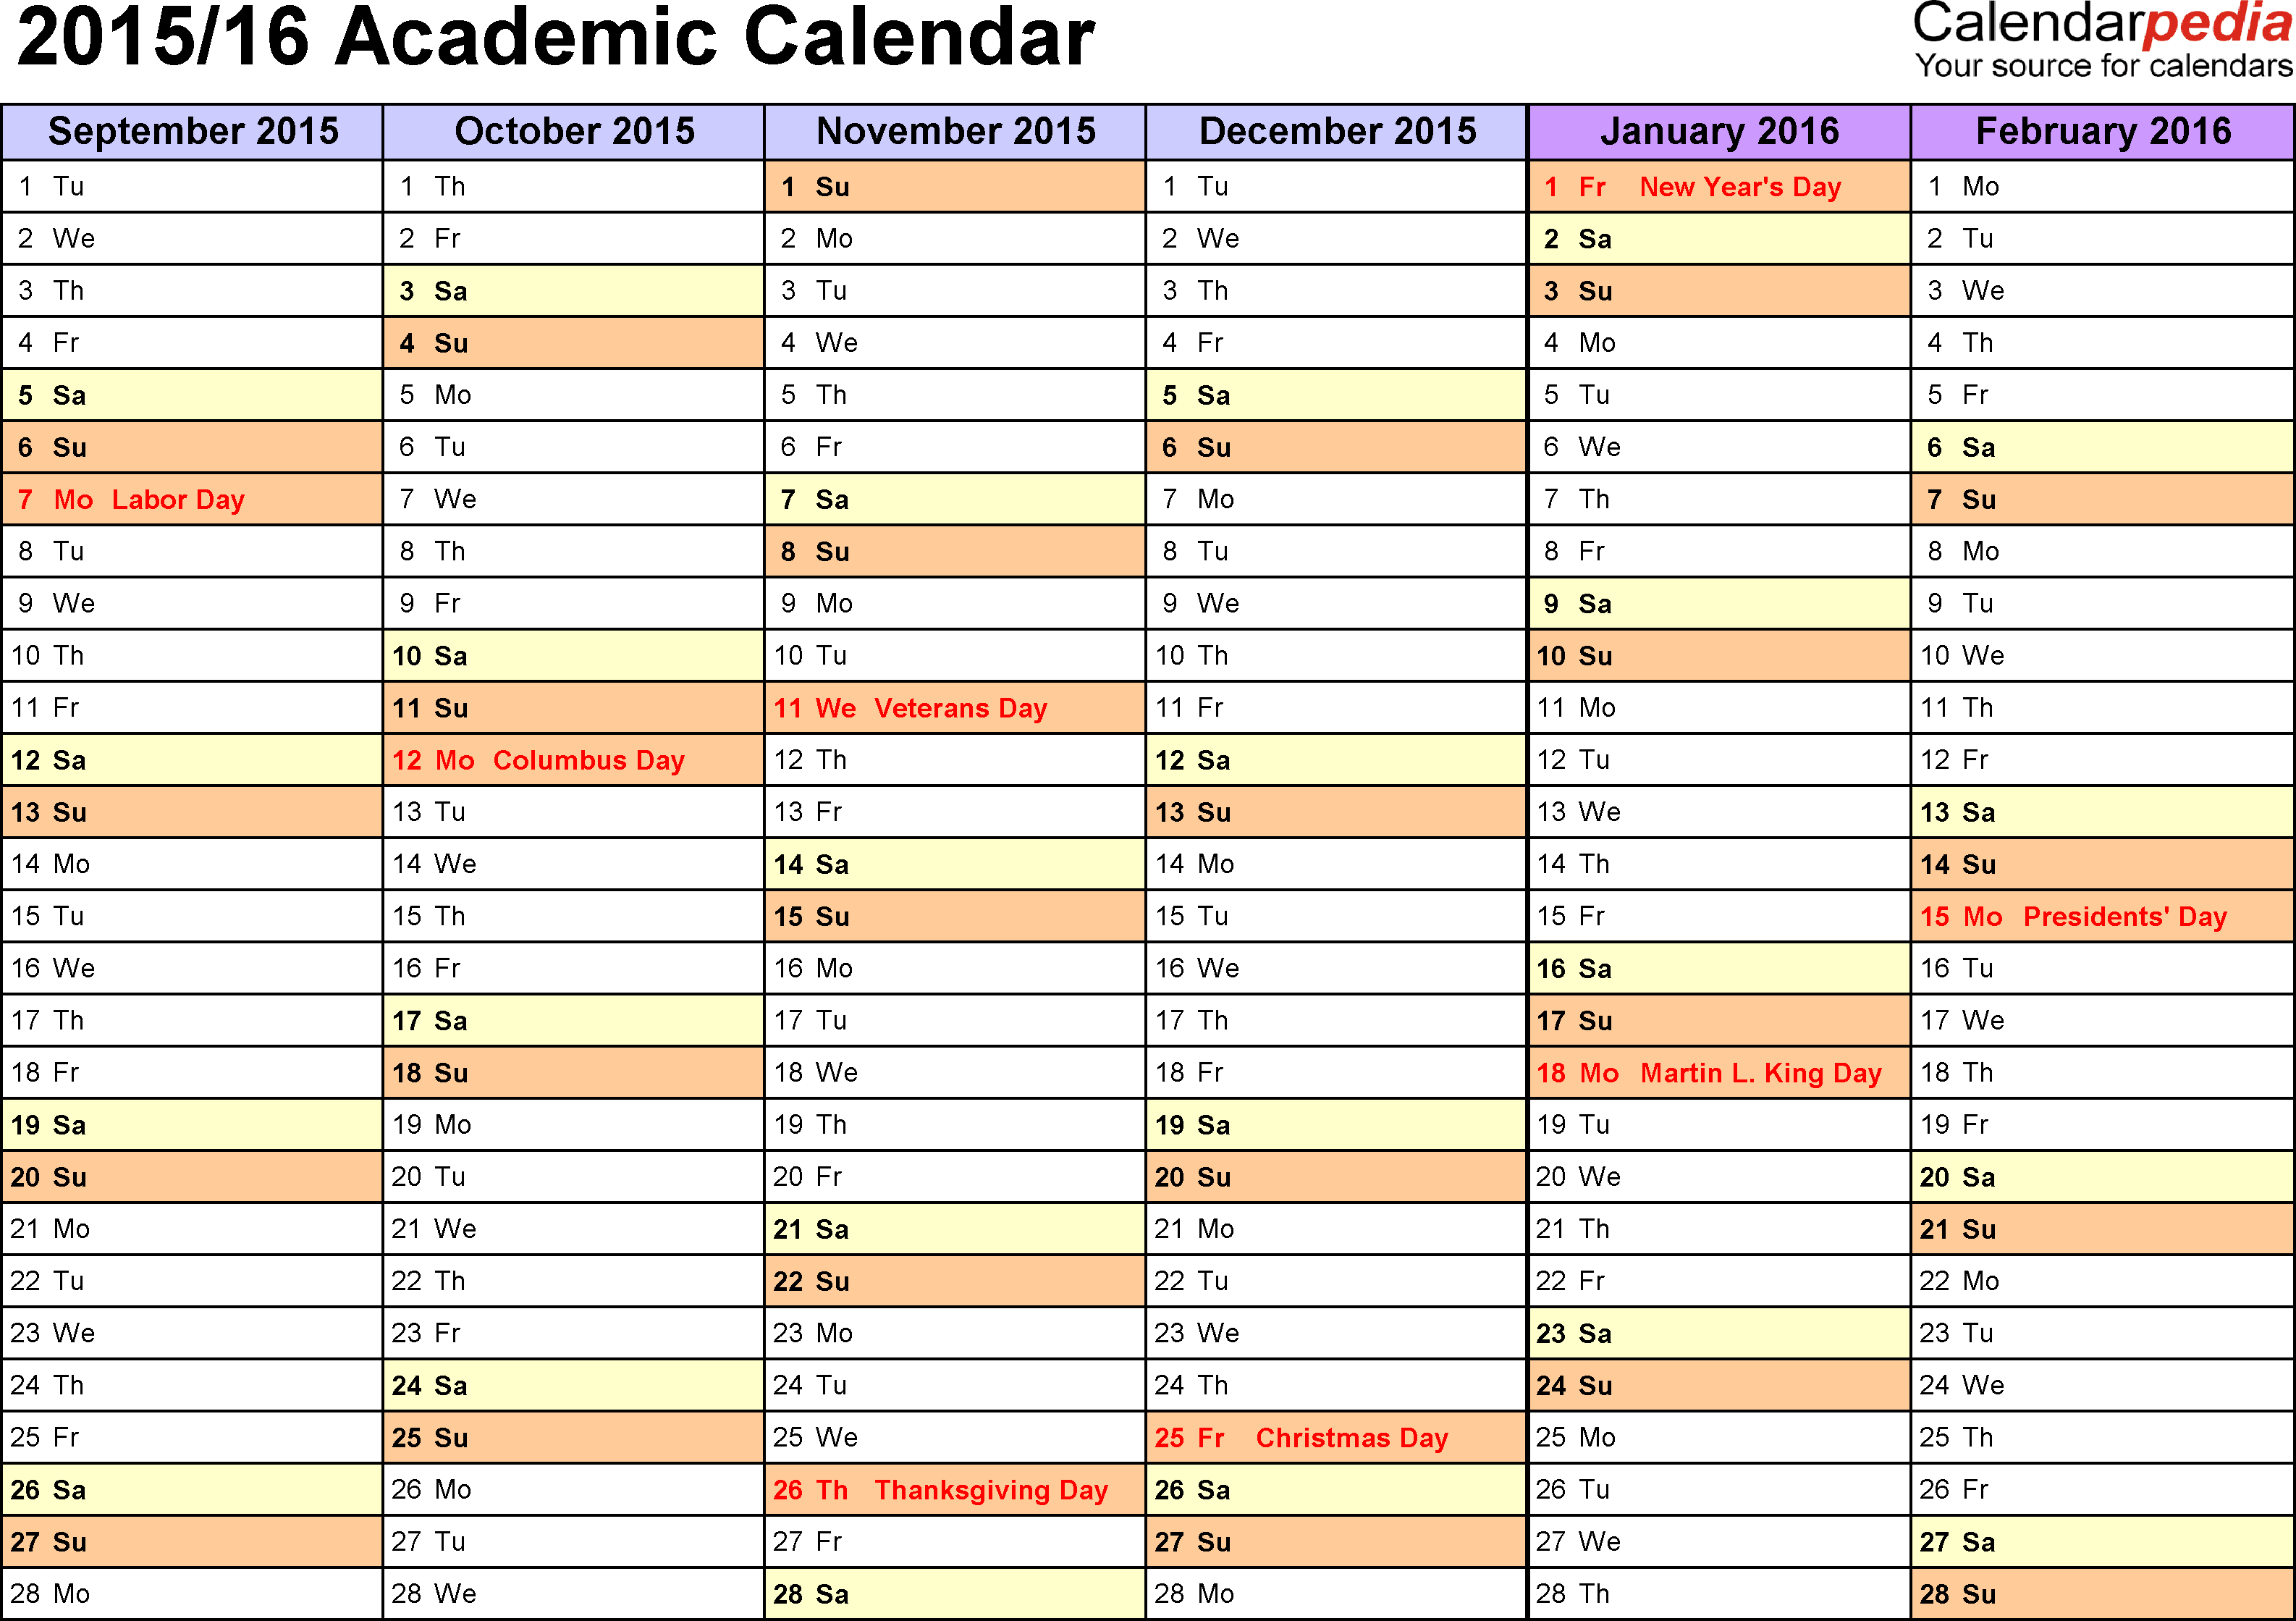 Template 3: Academic calendar 2015/16 for Word, landscape orientation, months horizontally, 2 pages